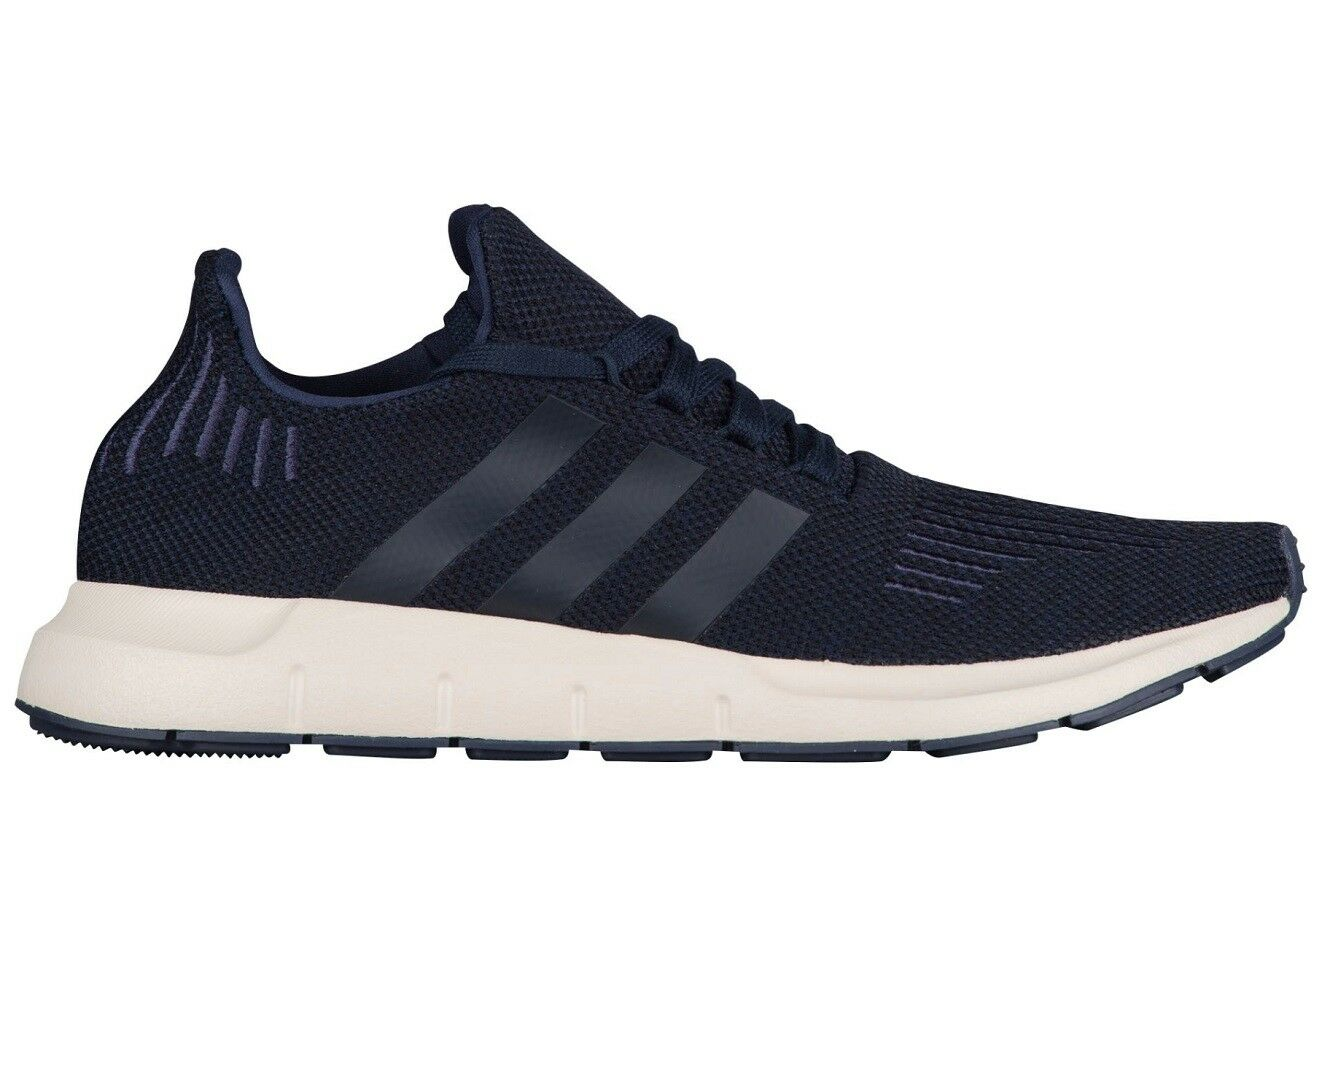 Adidas Swift Run Mens AC7165 Navy Trace Blue Knit Running Shoes Comfortable